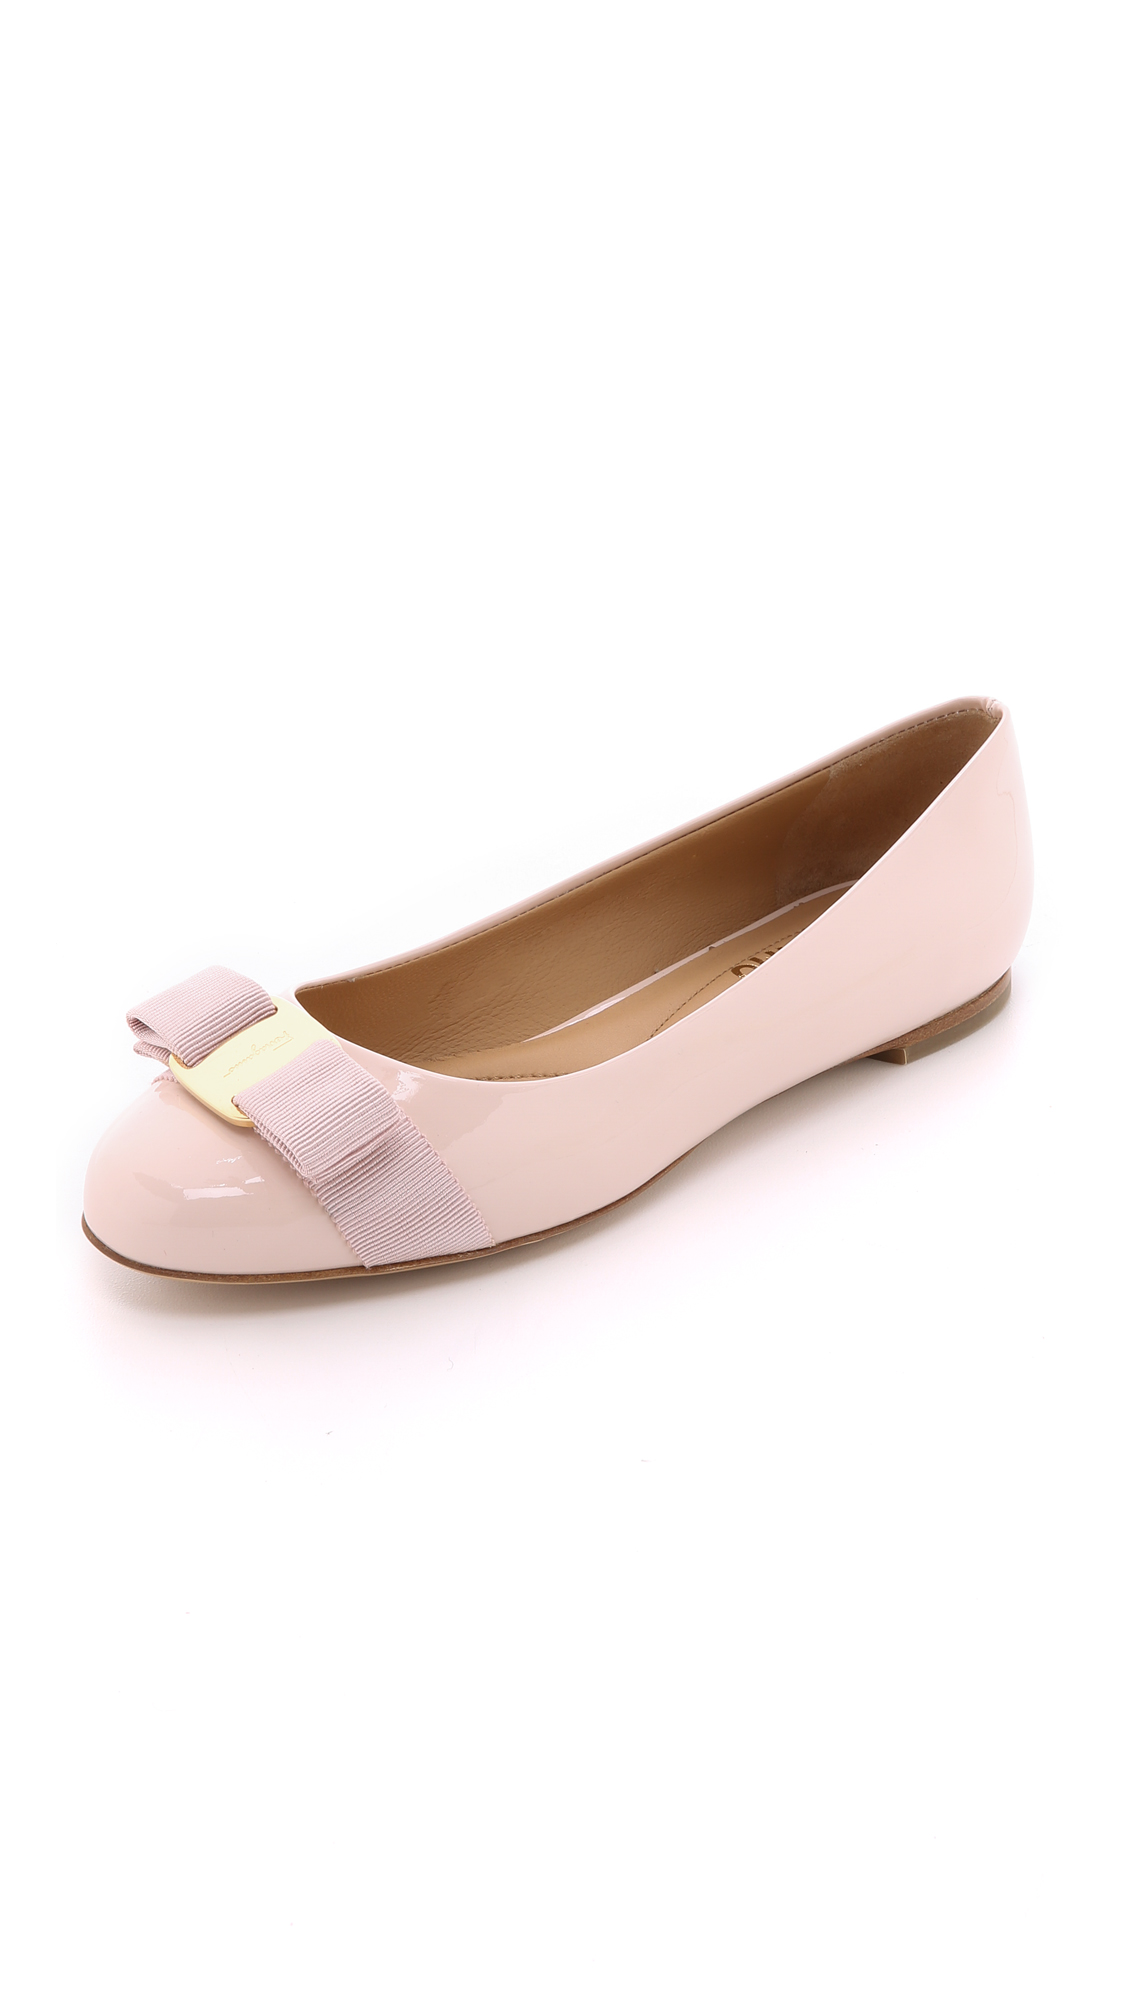 Varina Patent Leather Flats - Pink Size 8.5